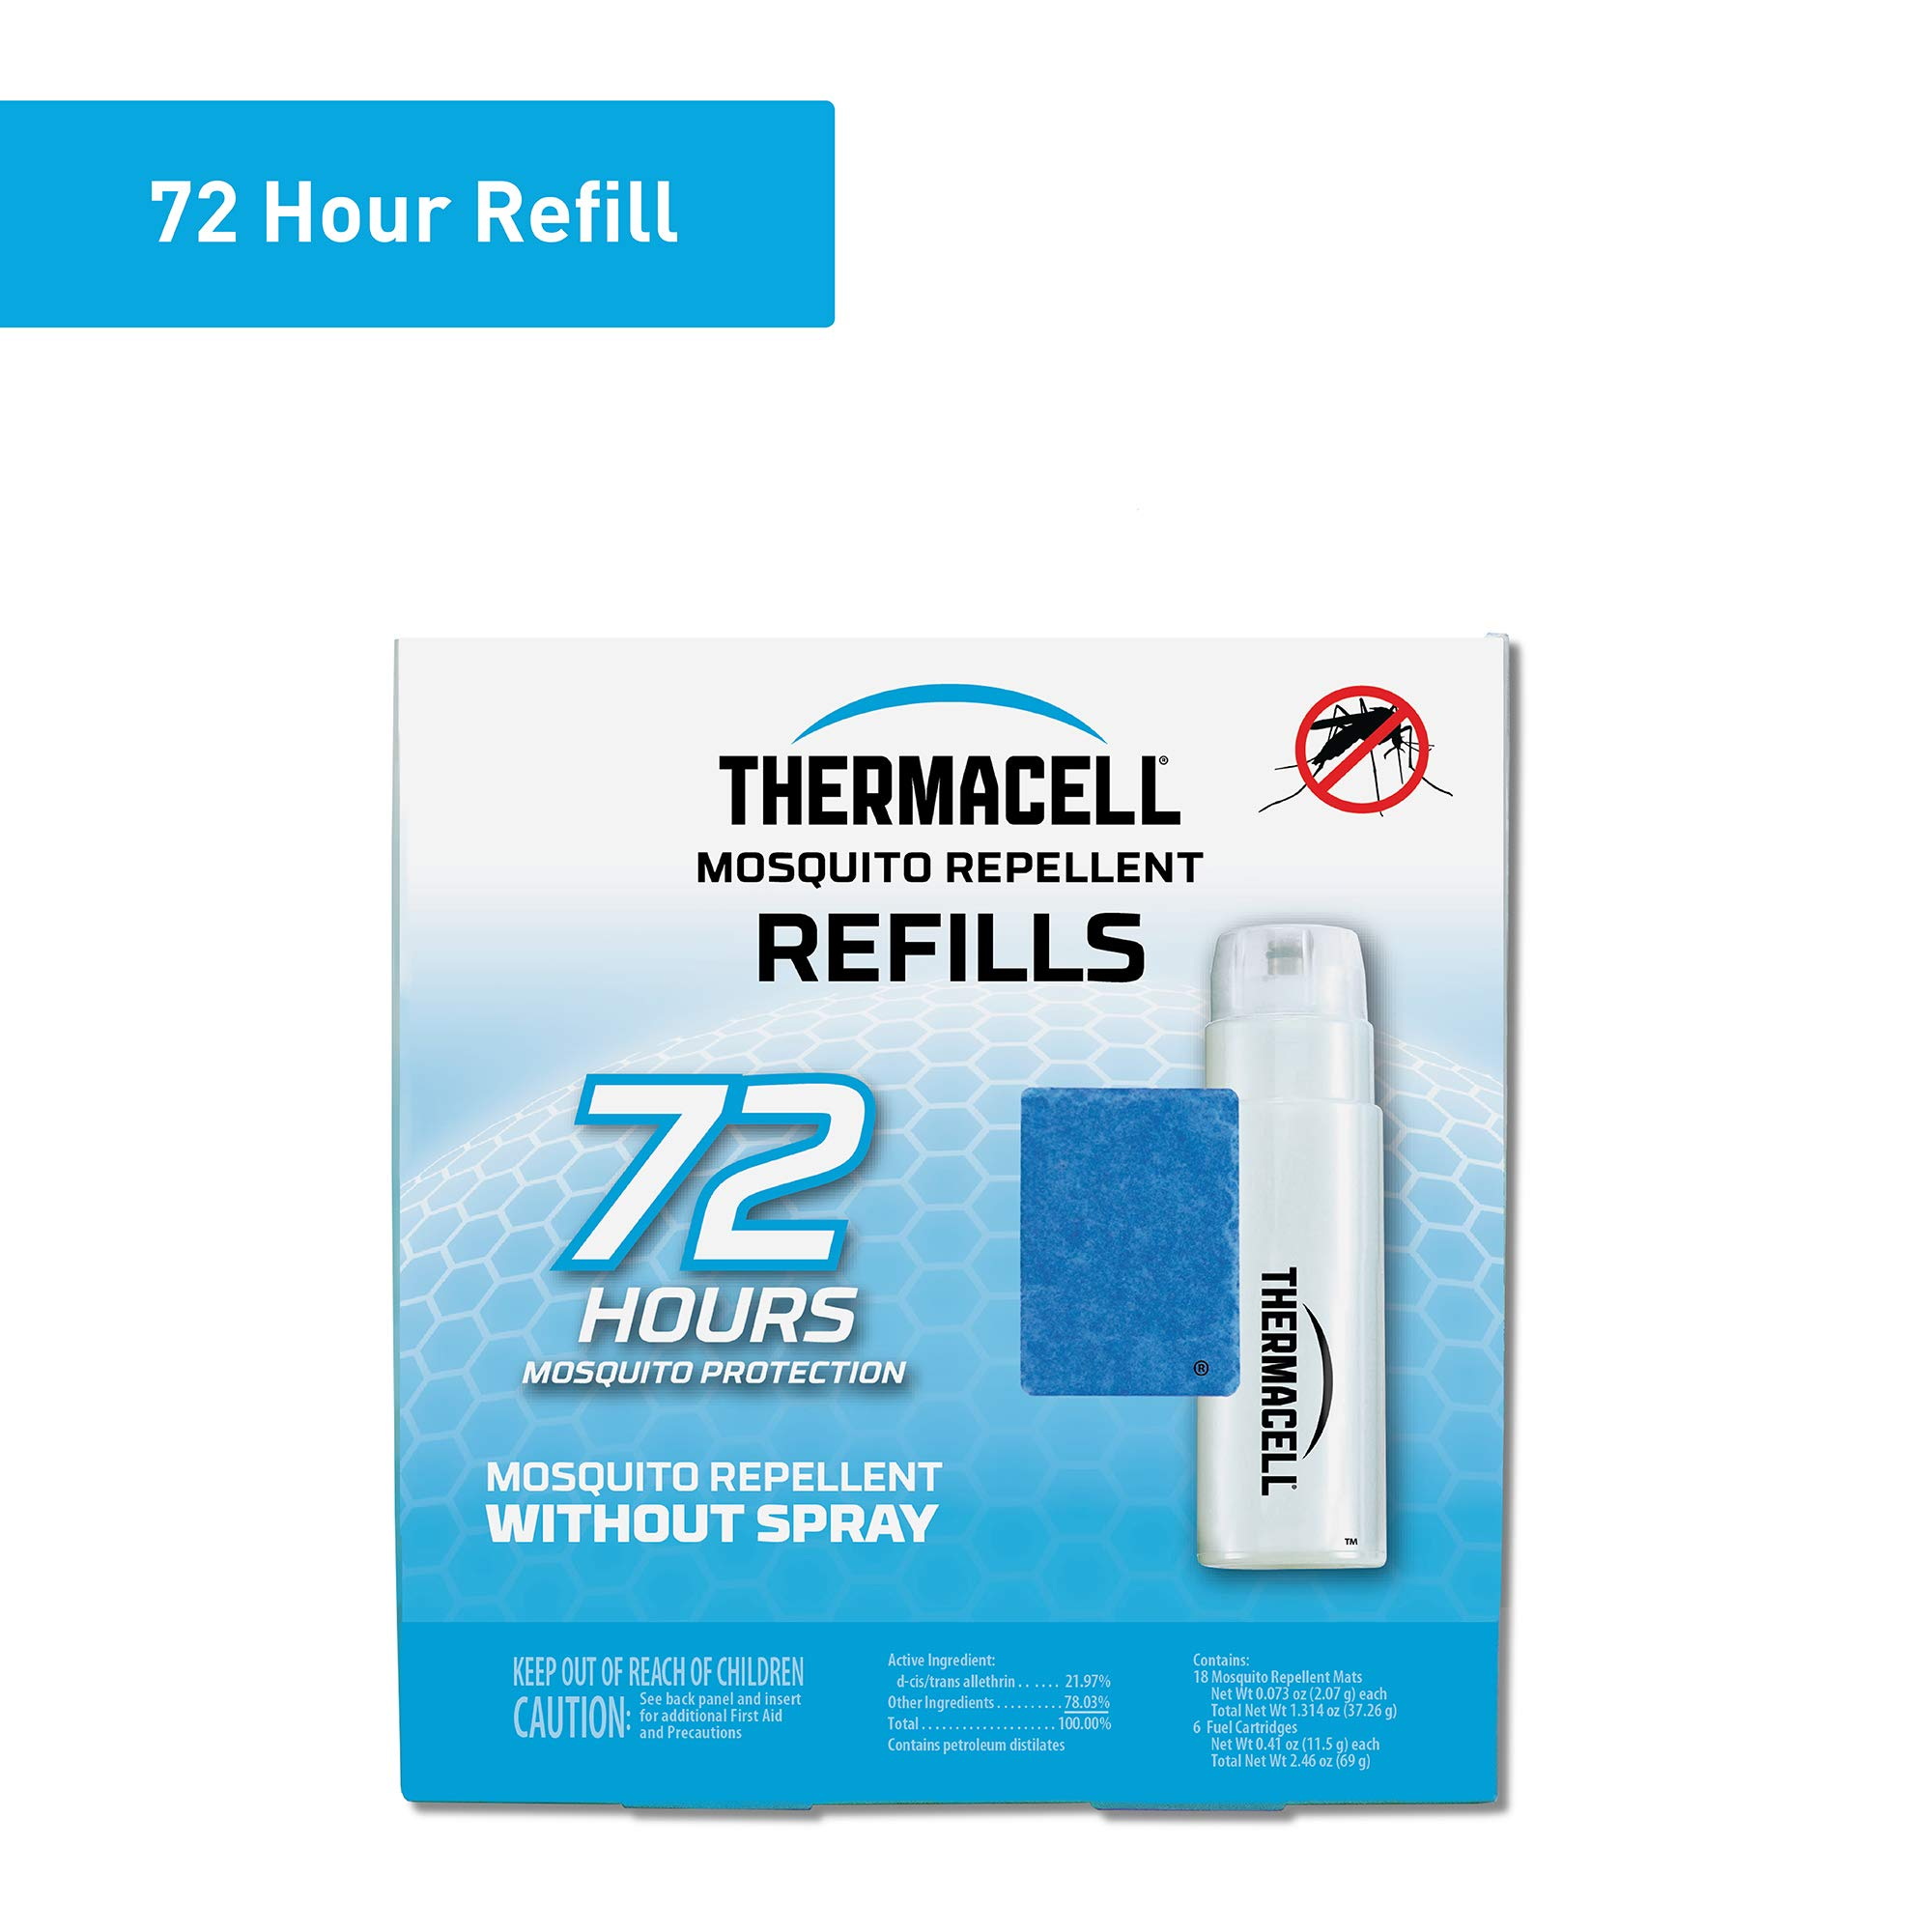 Thermacell Mosquito Repellent Refills, 72-Hour Pack; Contains 18 Repellent Mats, 6 Fuel Cartridges; Compatible with Any Fuel-Powered Thermacell Product; No Spray, Scent, Mess; 15 Ft Zone of Protection by Thermacell